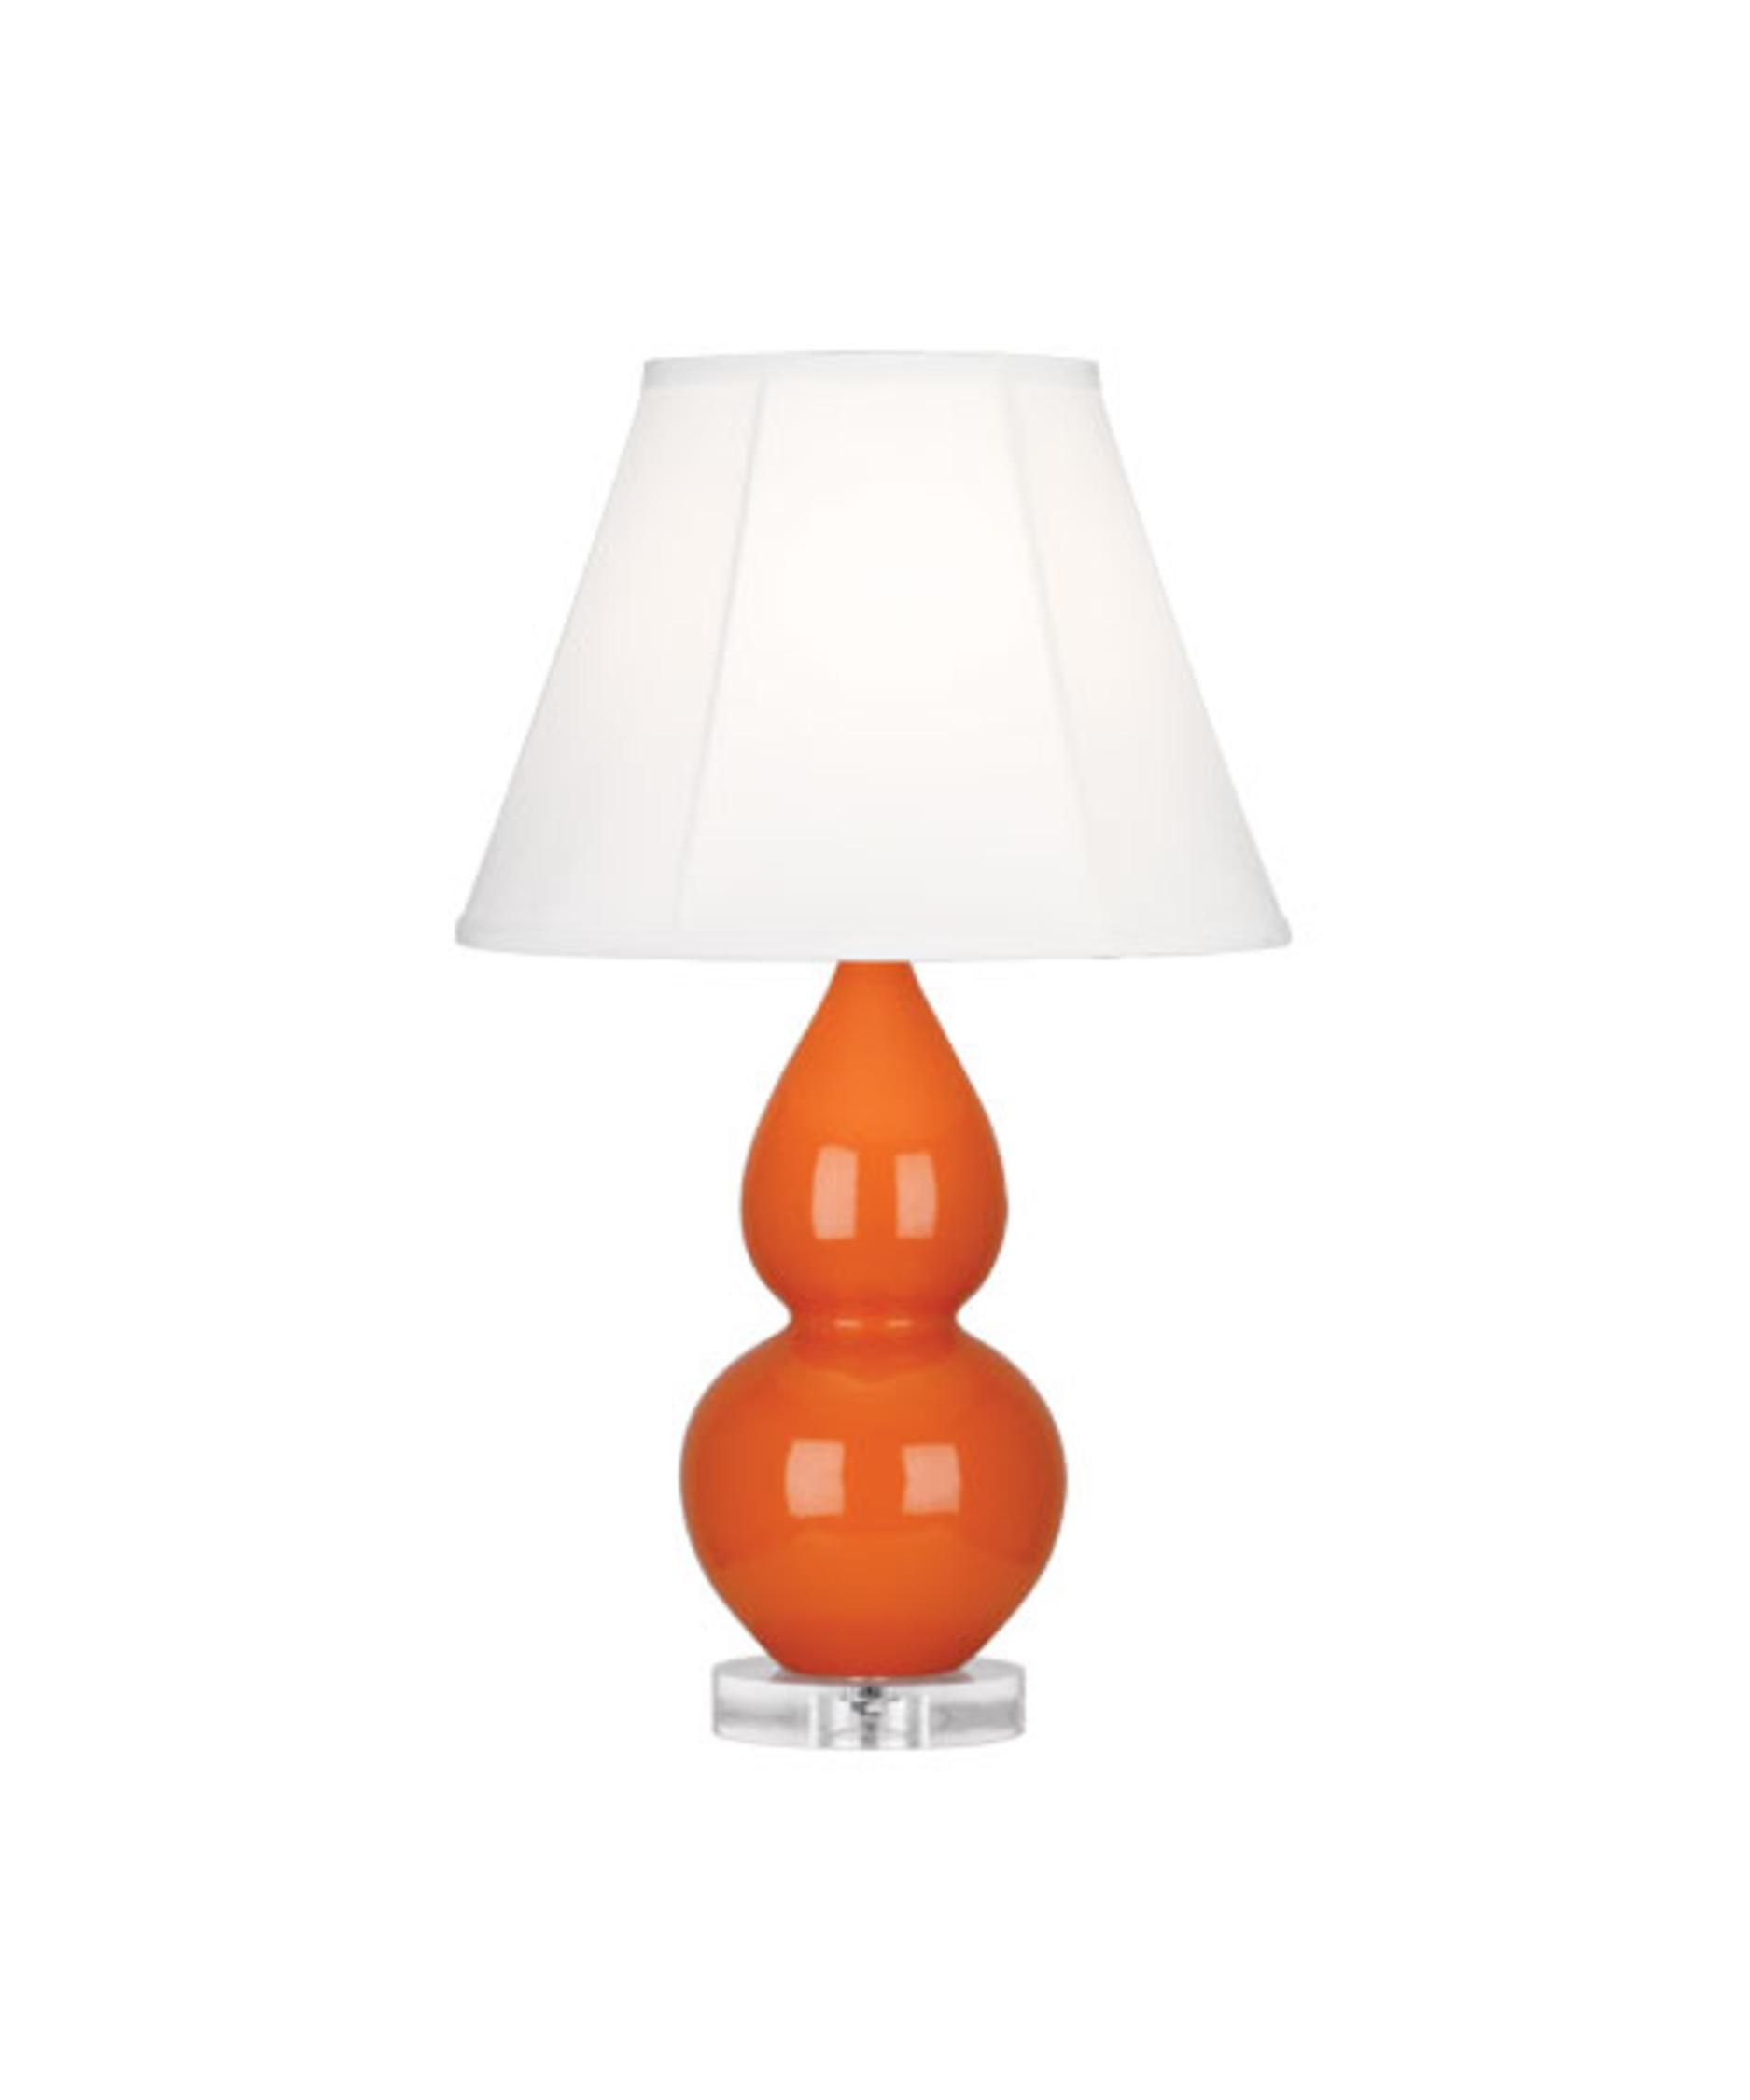 Robert abbey a695 small double gourd 22 inch table lamp